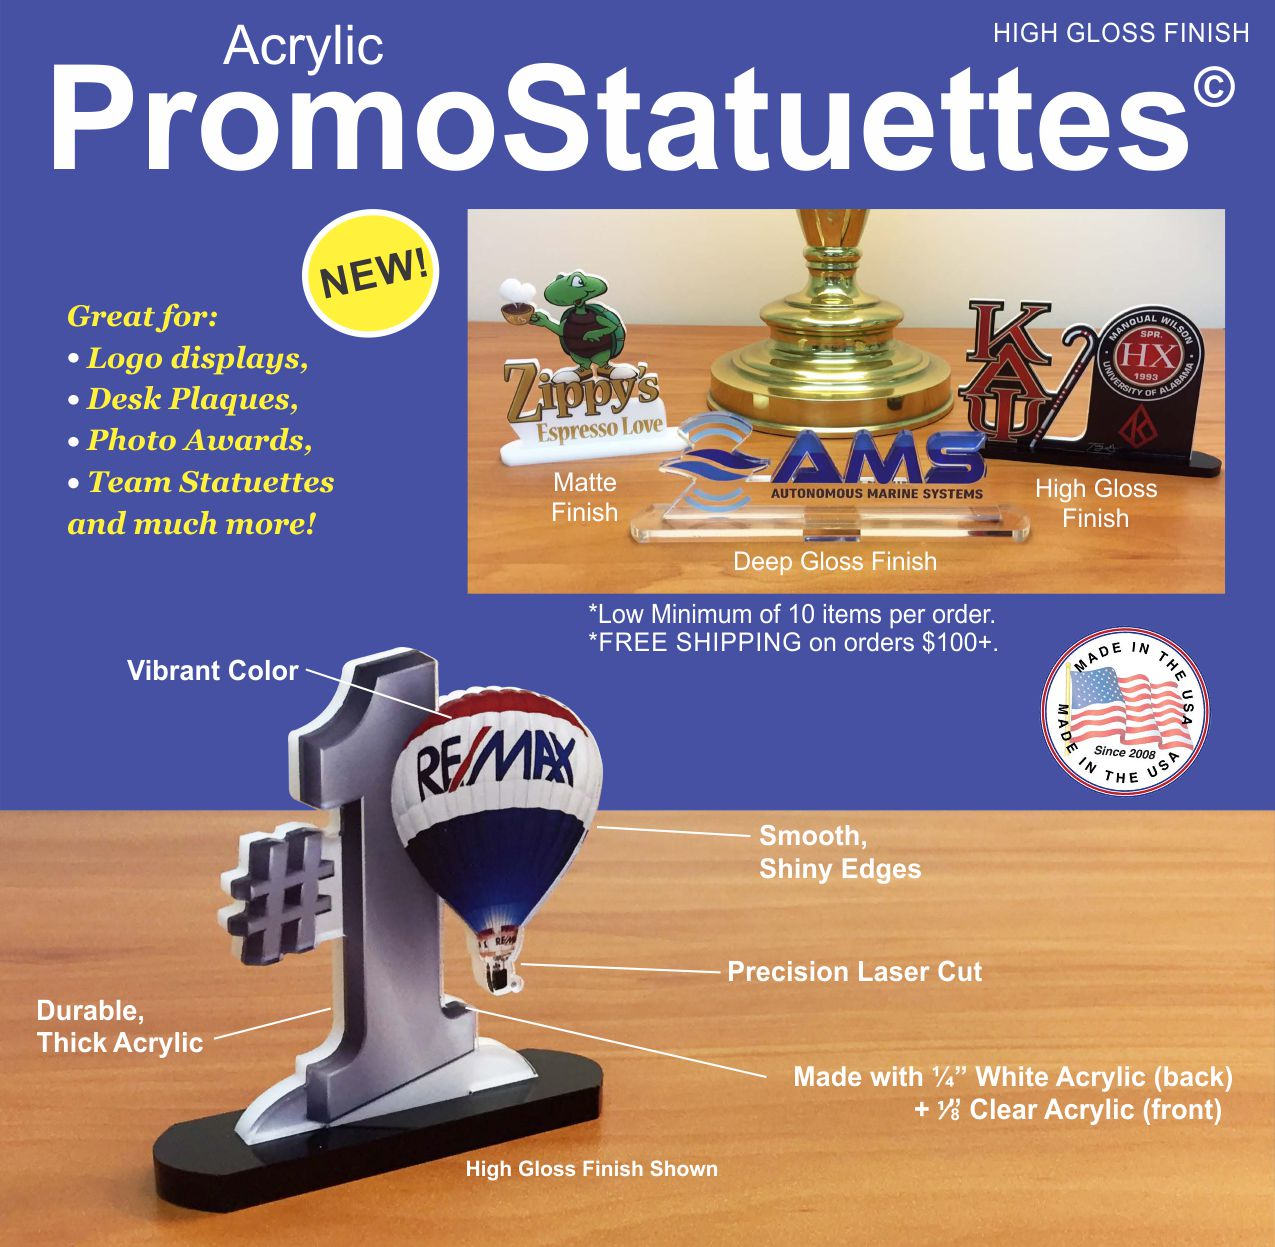 promostatuettes-high-gloss-c.jpg